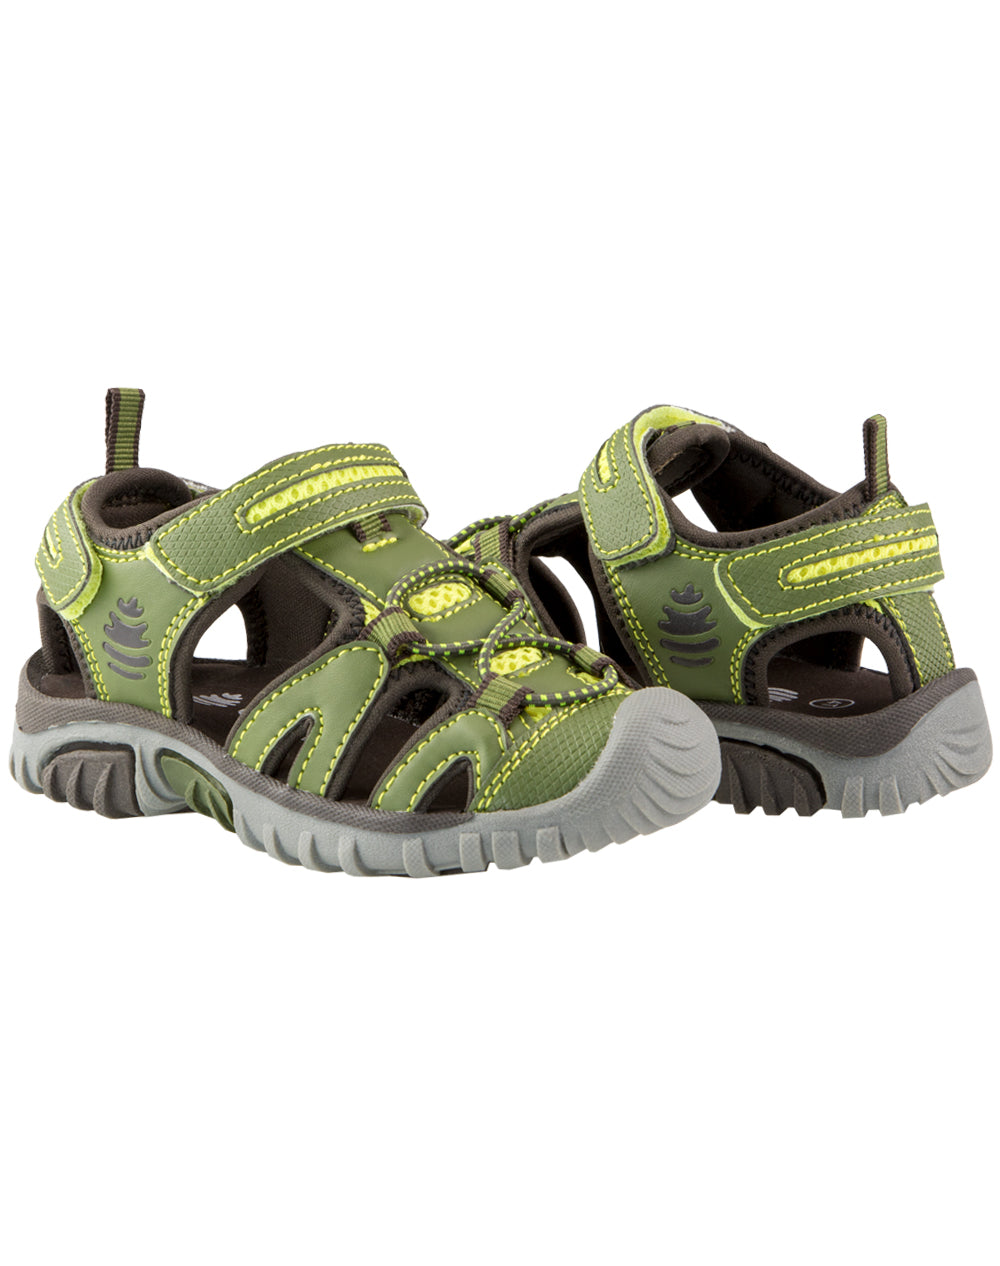 Moss Green Rock Creek Sandals